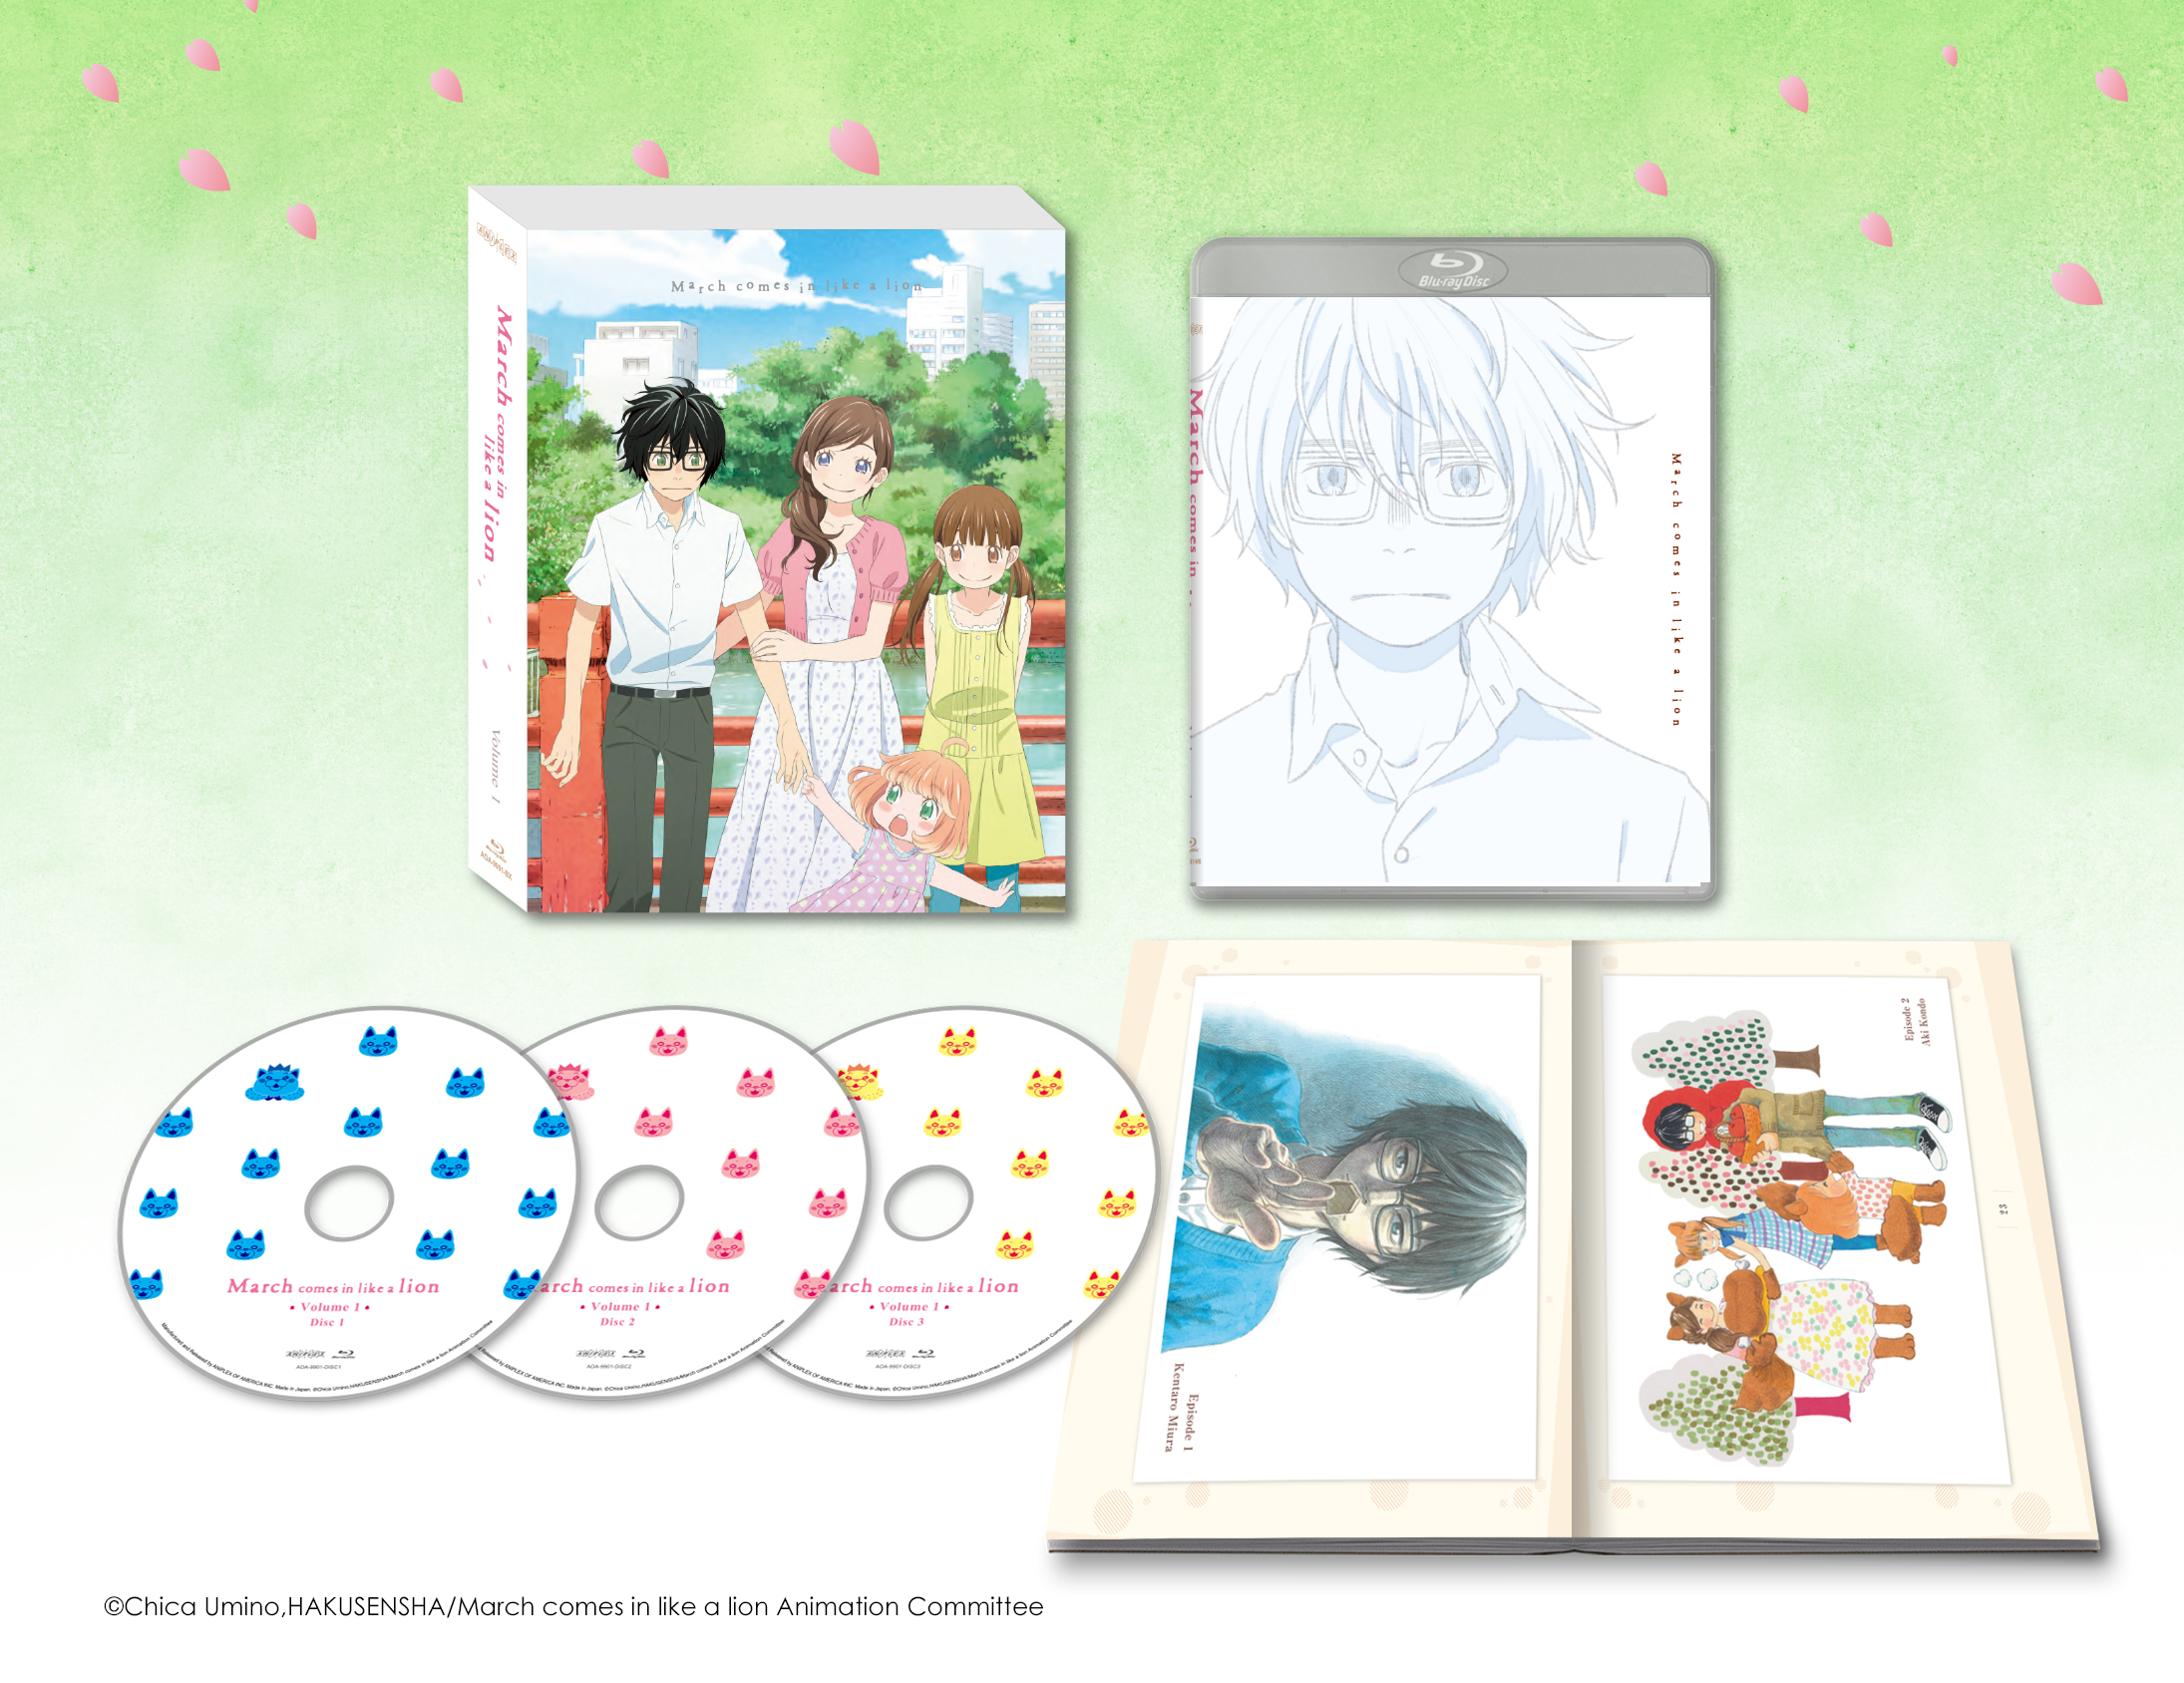 March Comes in Like a Lion Volume 1 Blu-ray